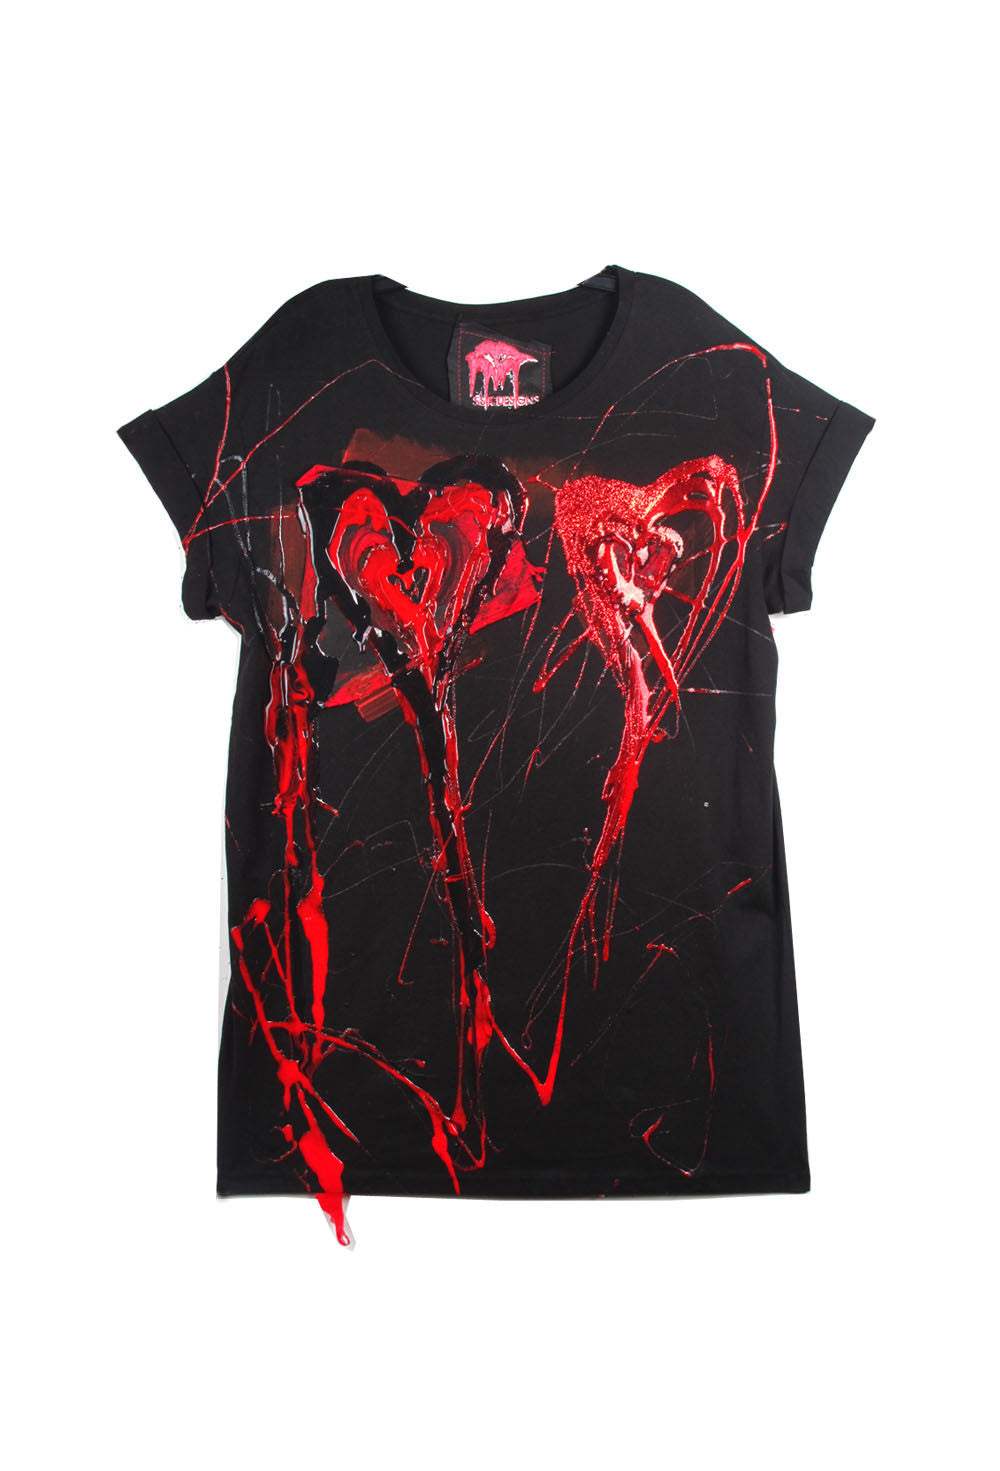 SSIK ONE OF A KIND Silicon Drip Double Heart Glitter Tee - AVAILABLE FOR  IMMEDIATE DELIVERY SIZE M